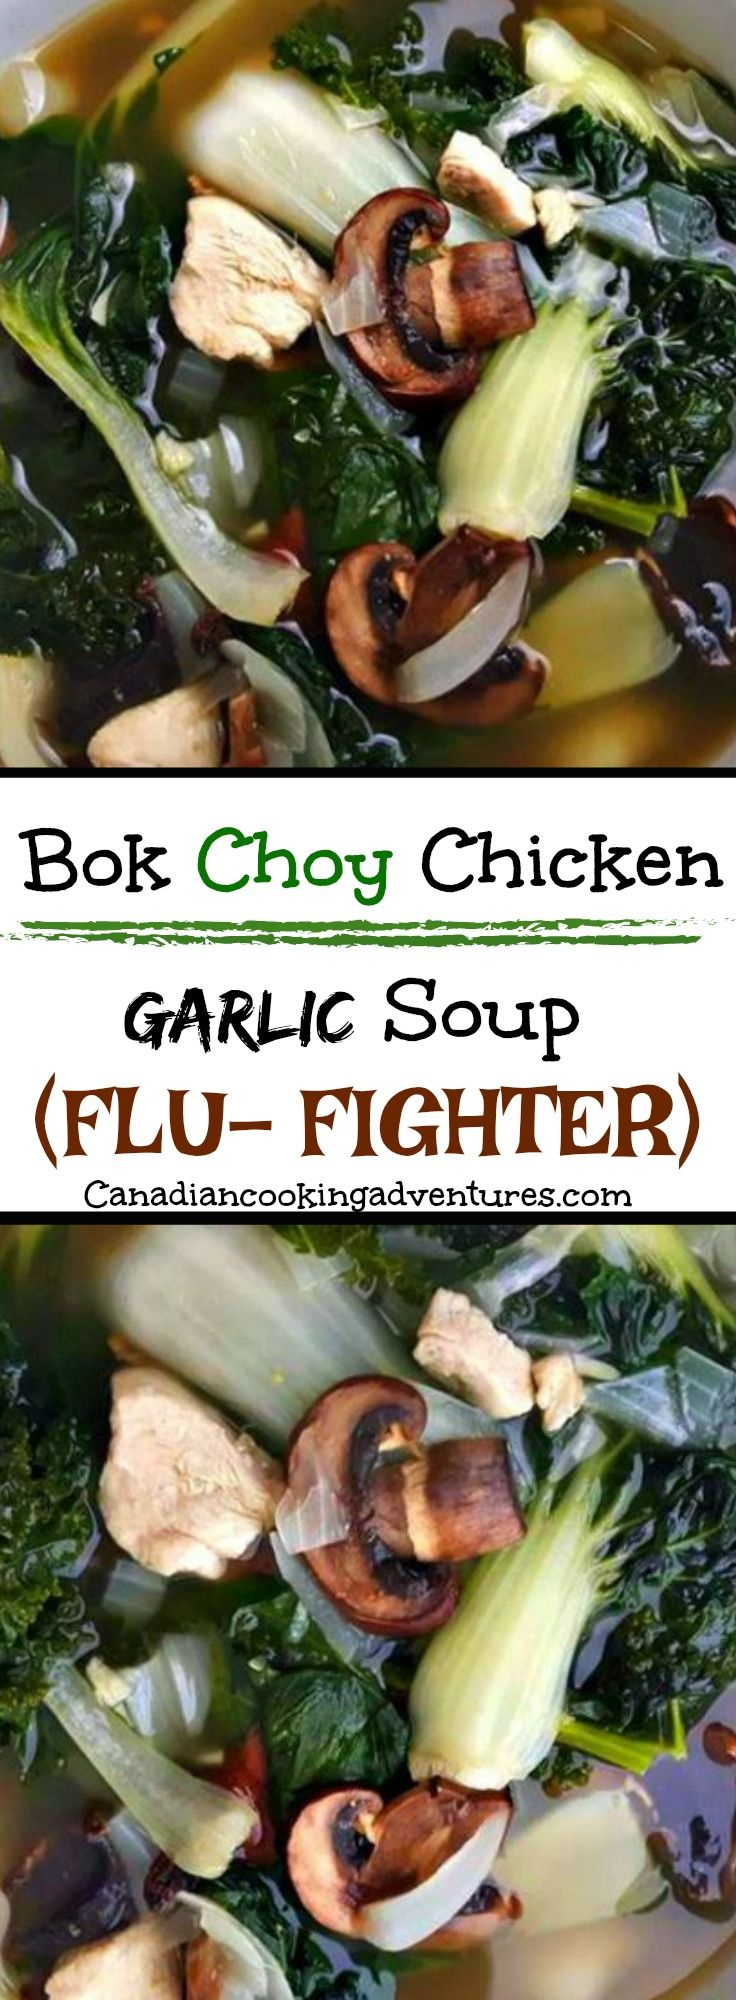 26055590_409065566203072_1713976497103263322_n Bok Choy Chicken Garlic (Flu-Fighter) Soup